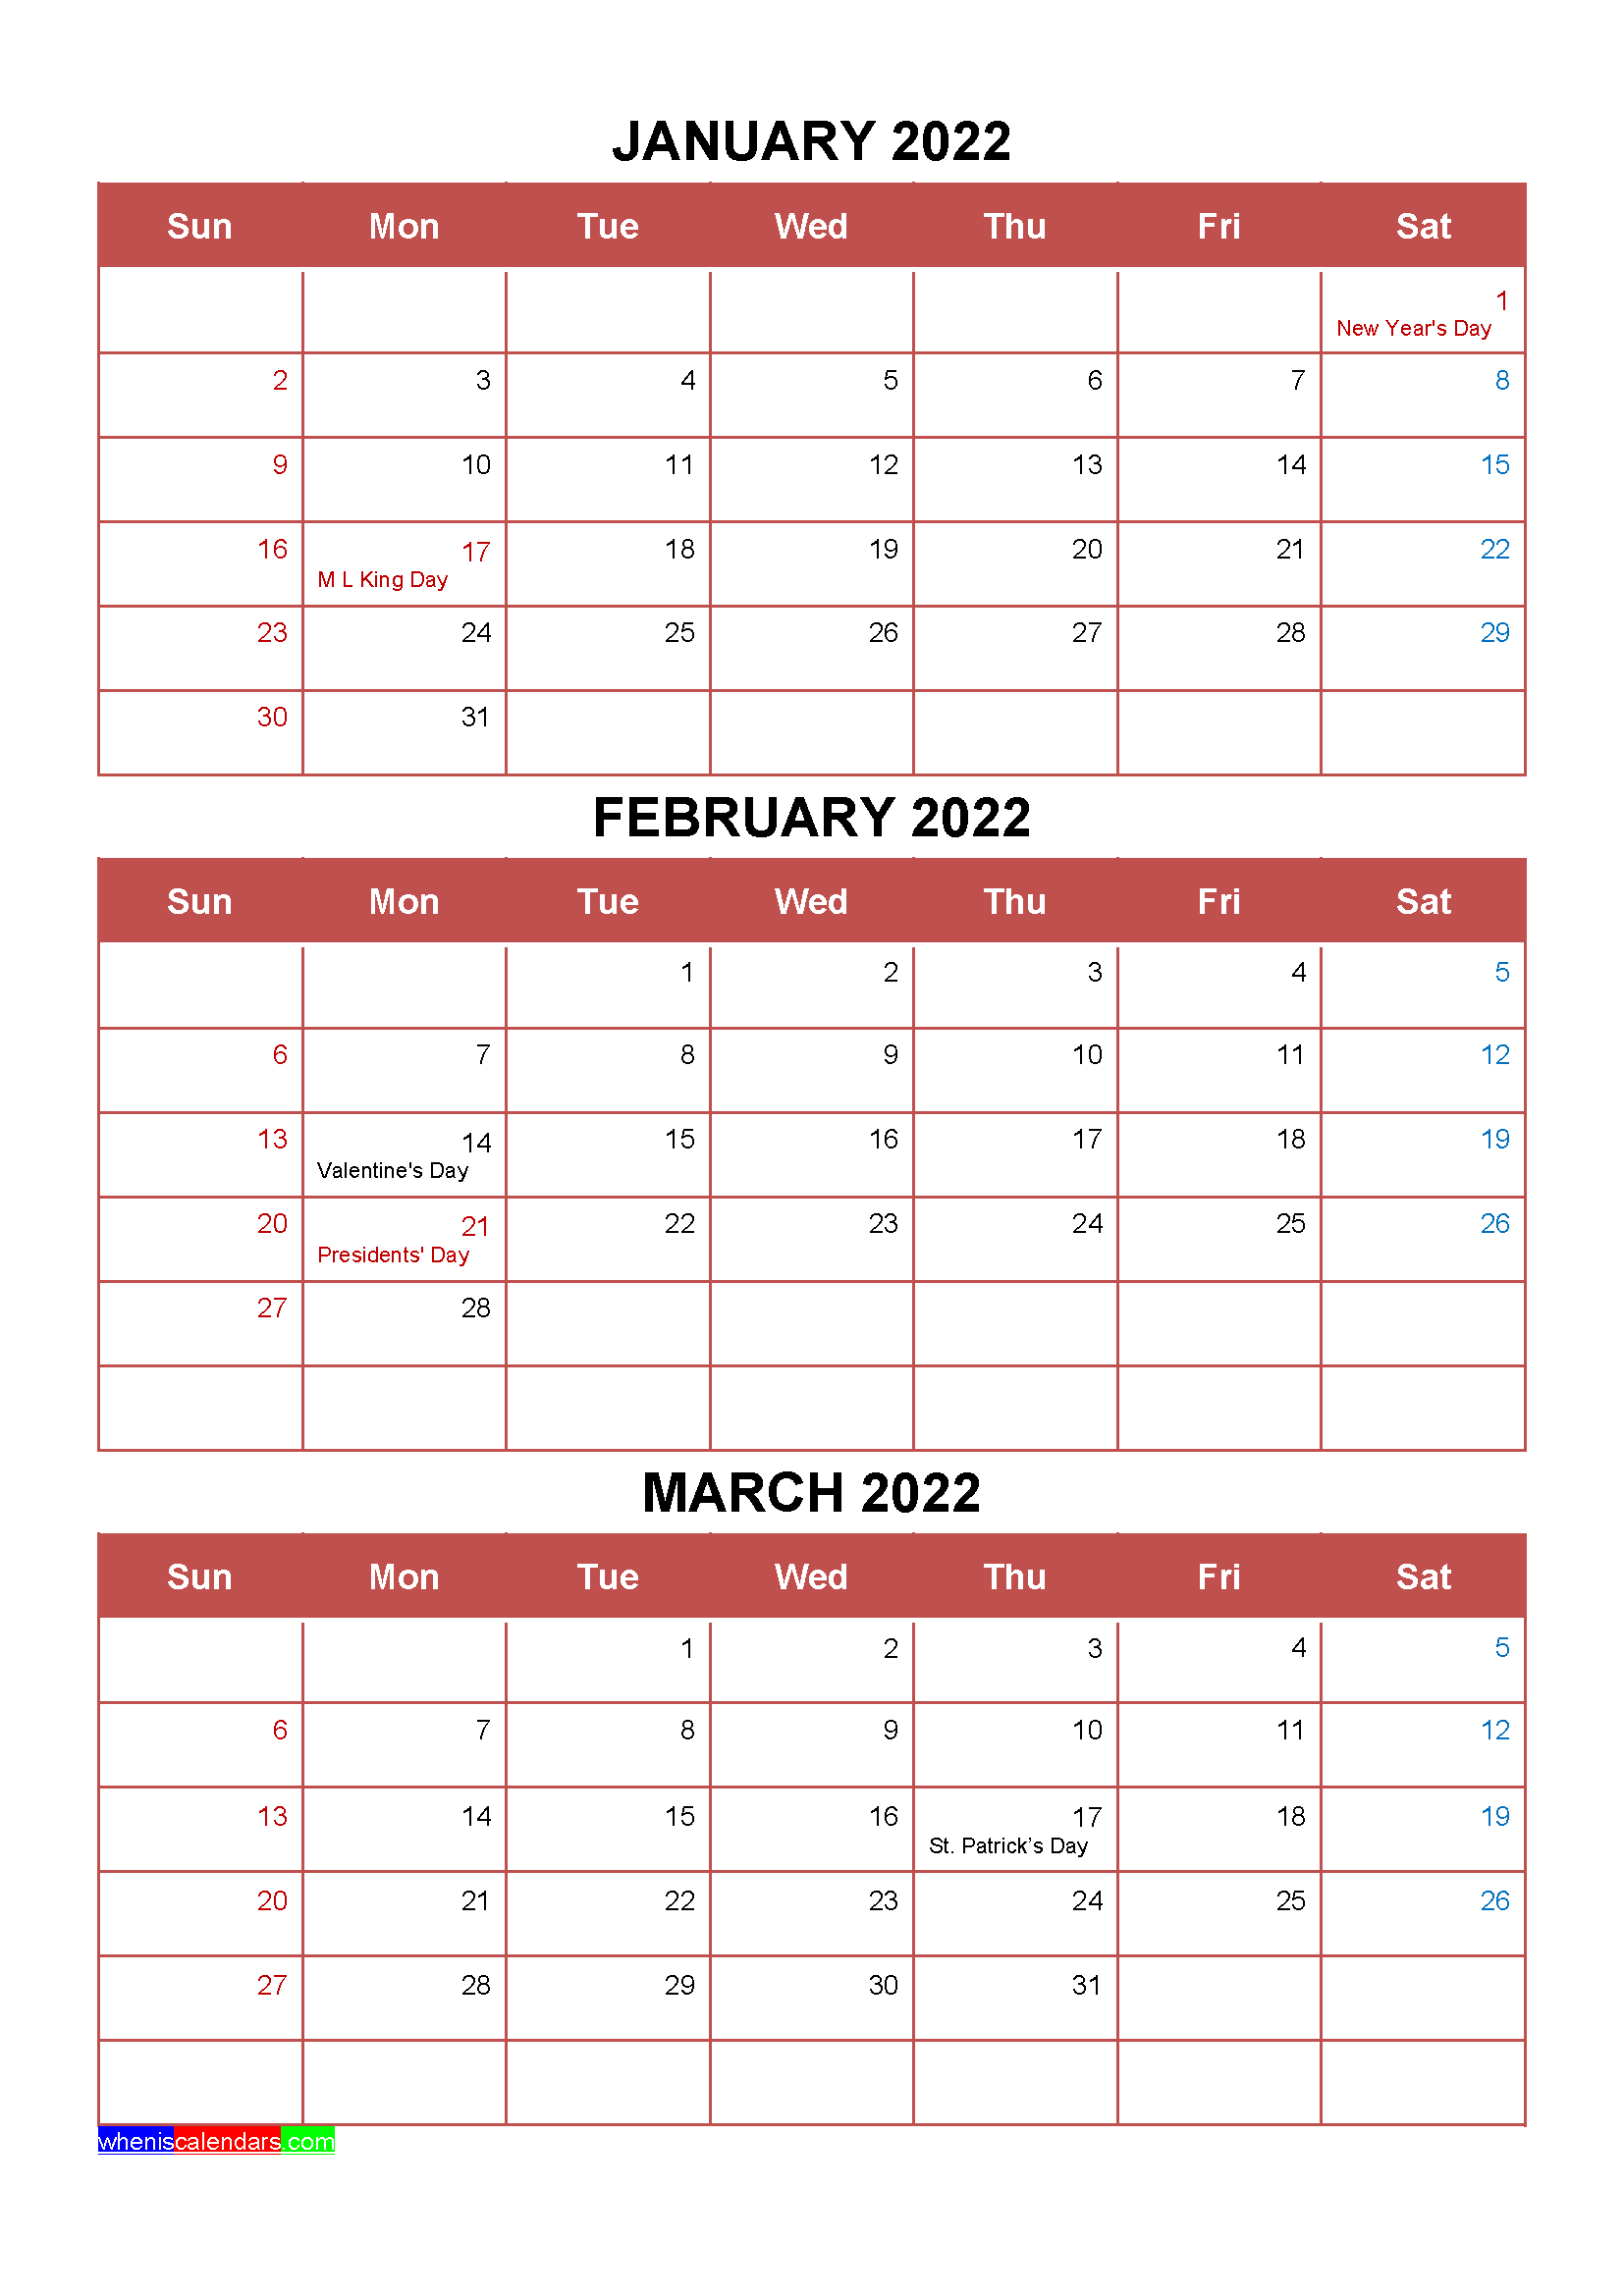 Free January February March 2022 Calendar with Holidays